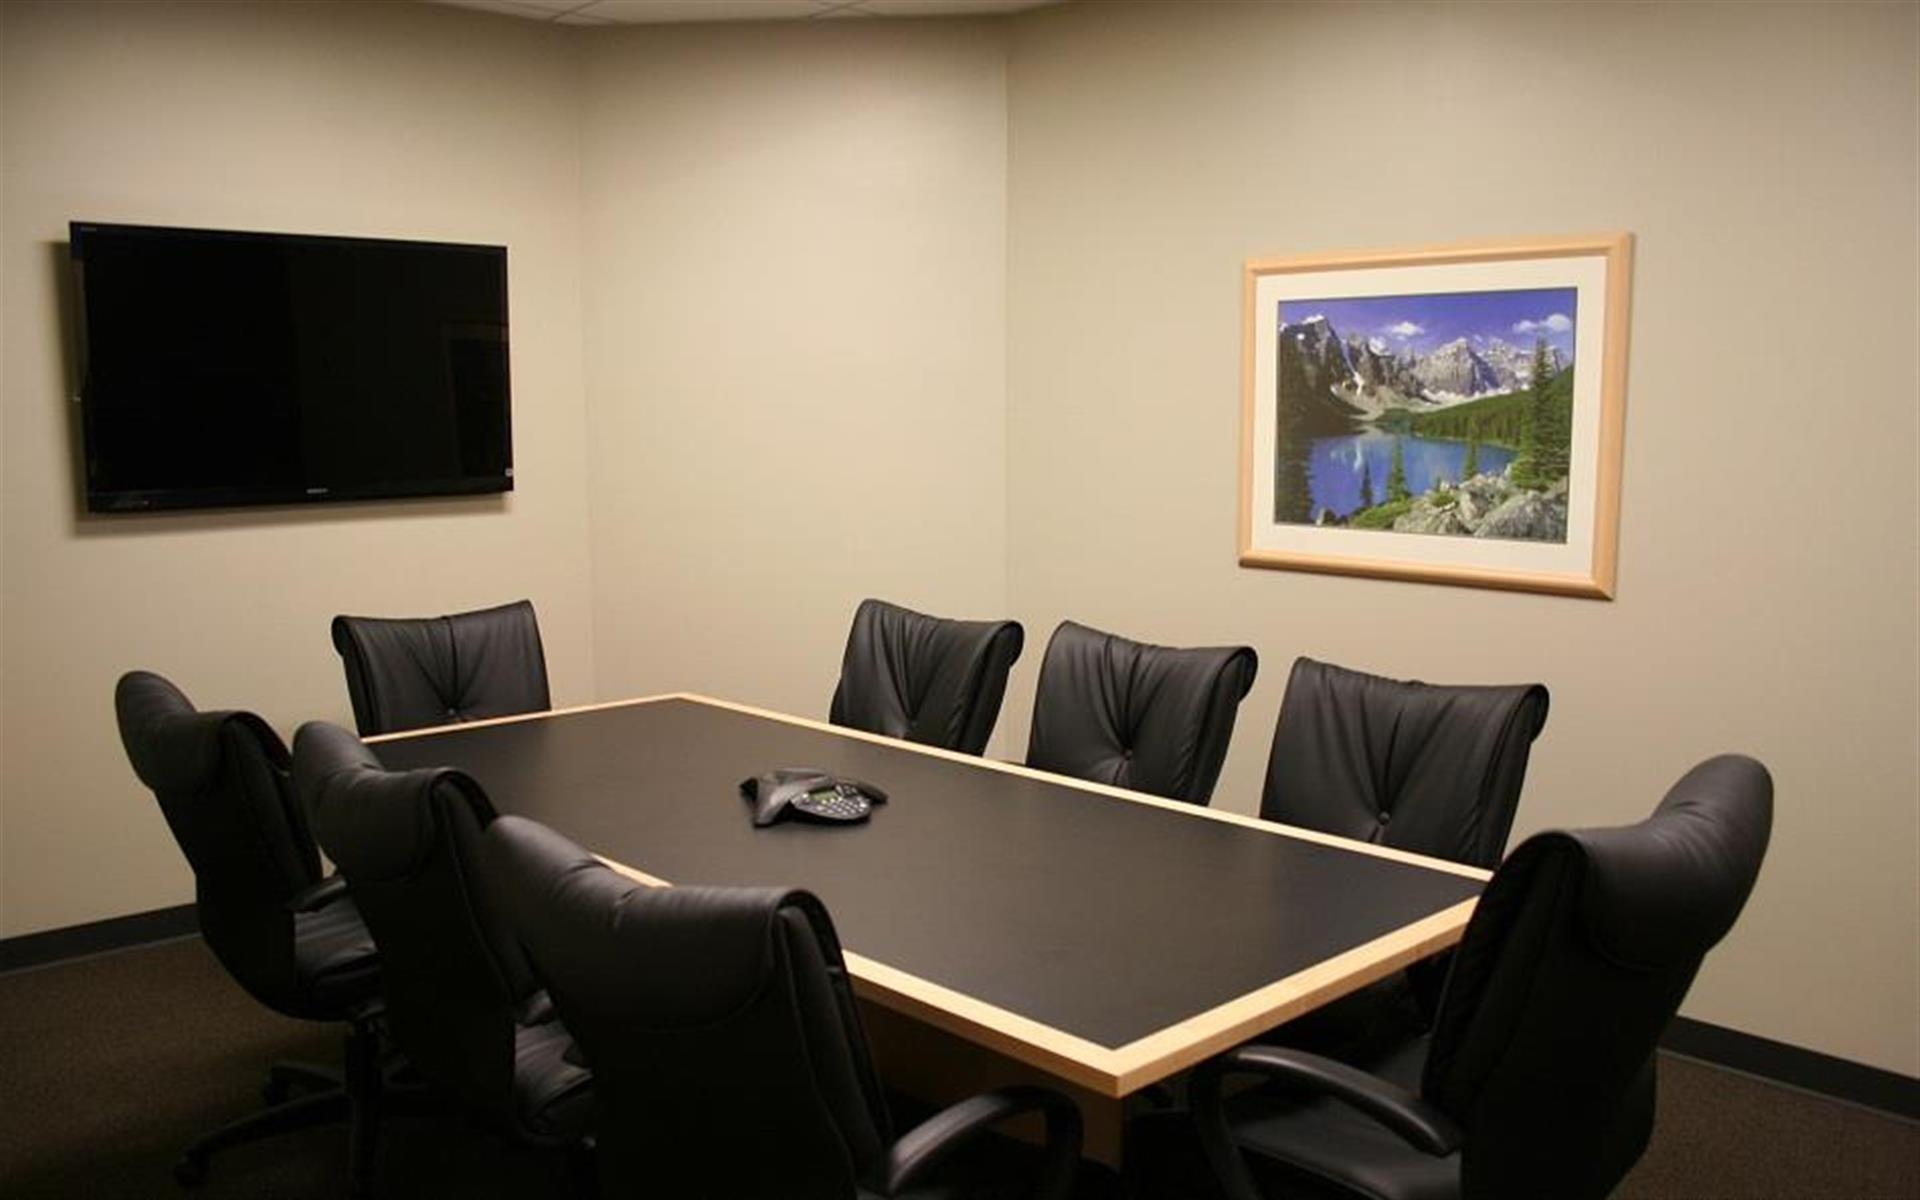 Intelligent Office of San Diego - Small Conference Room #2 - After Hours